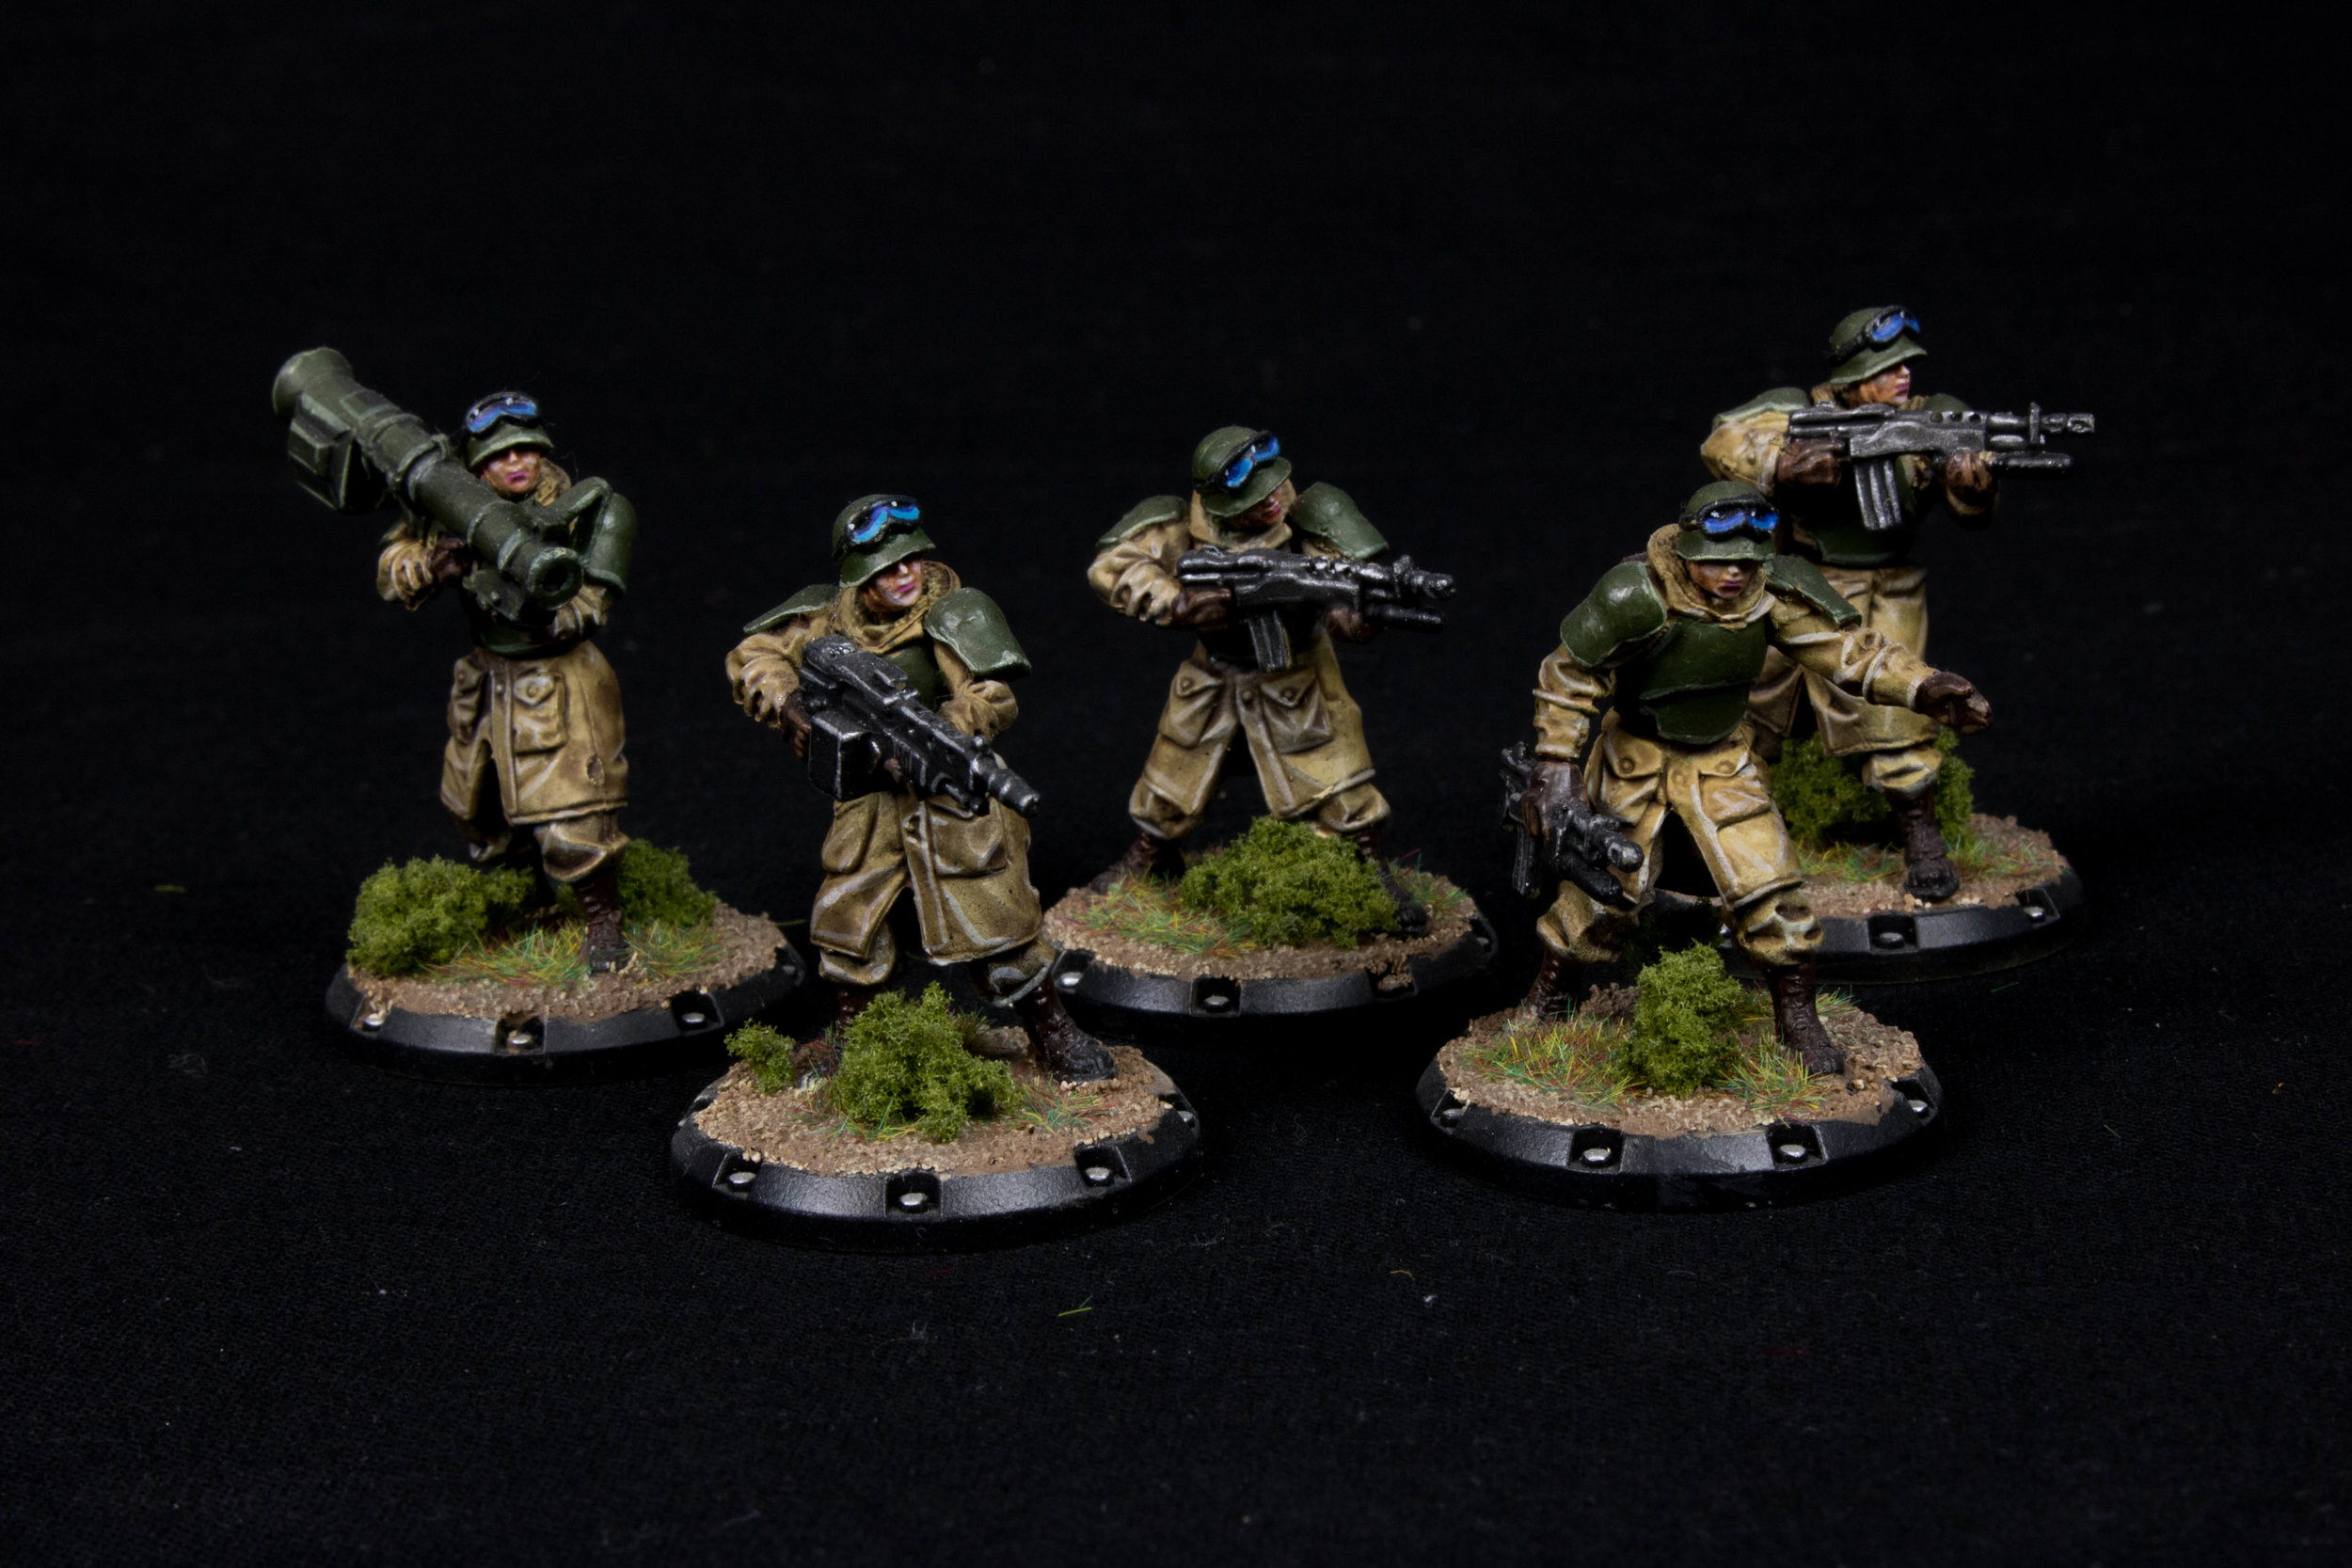 Dust Tactics WWII Warfare Germans Americans Axis Allies Bolt Action 28mm Alternate WWII-27.jpg